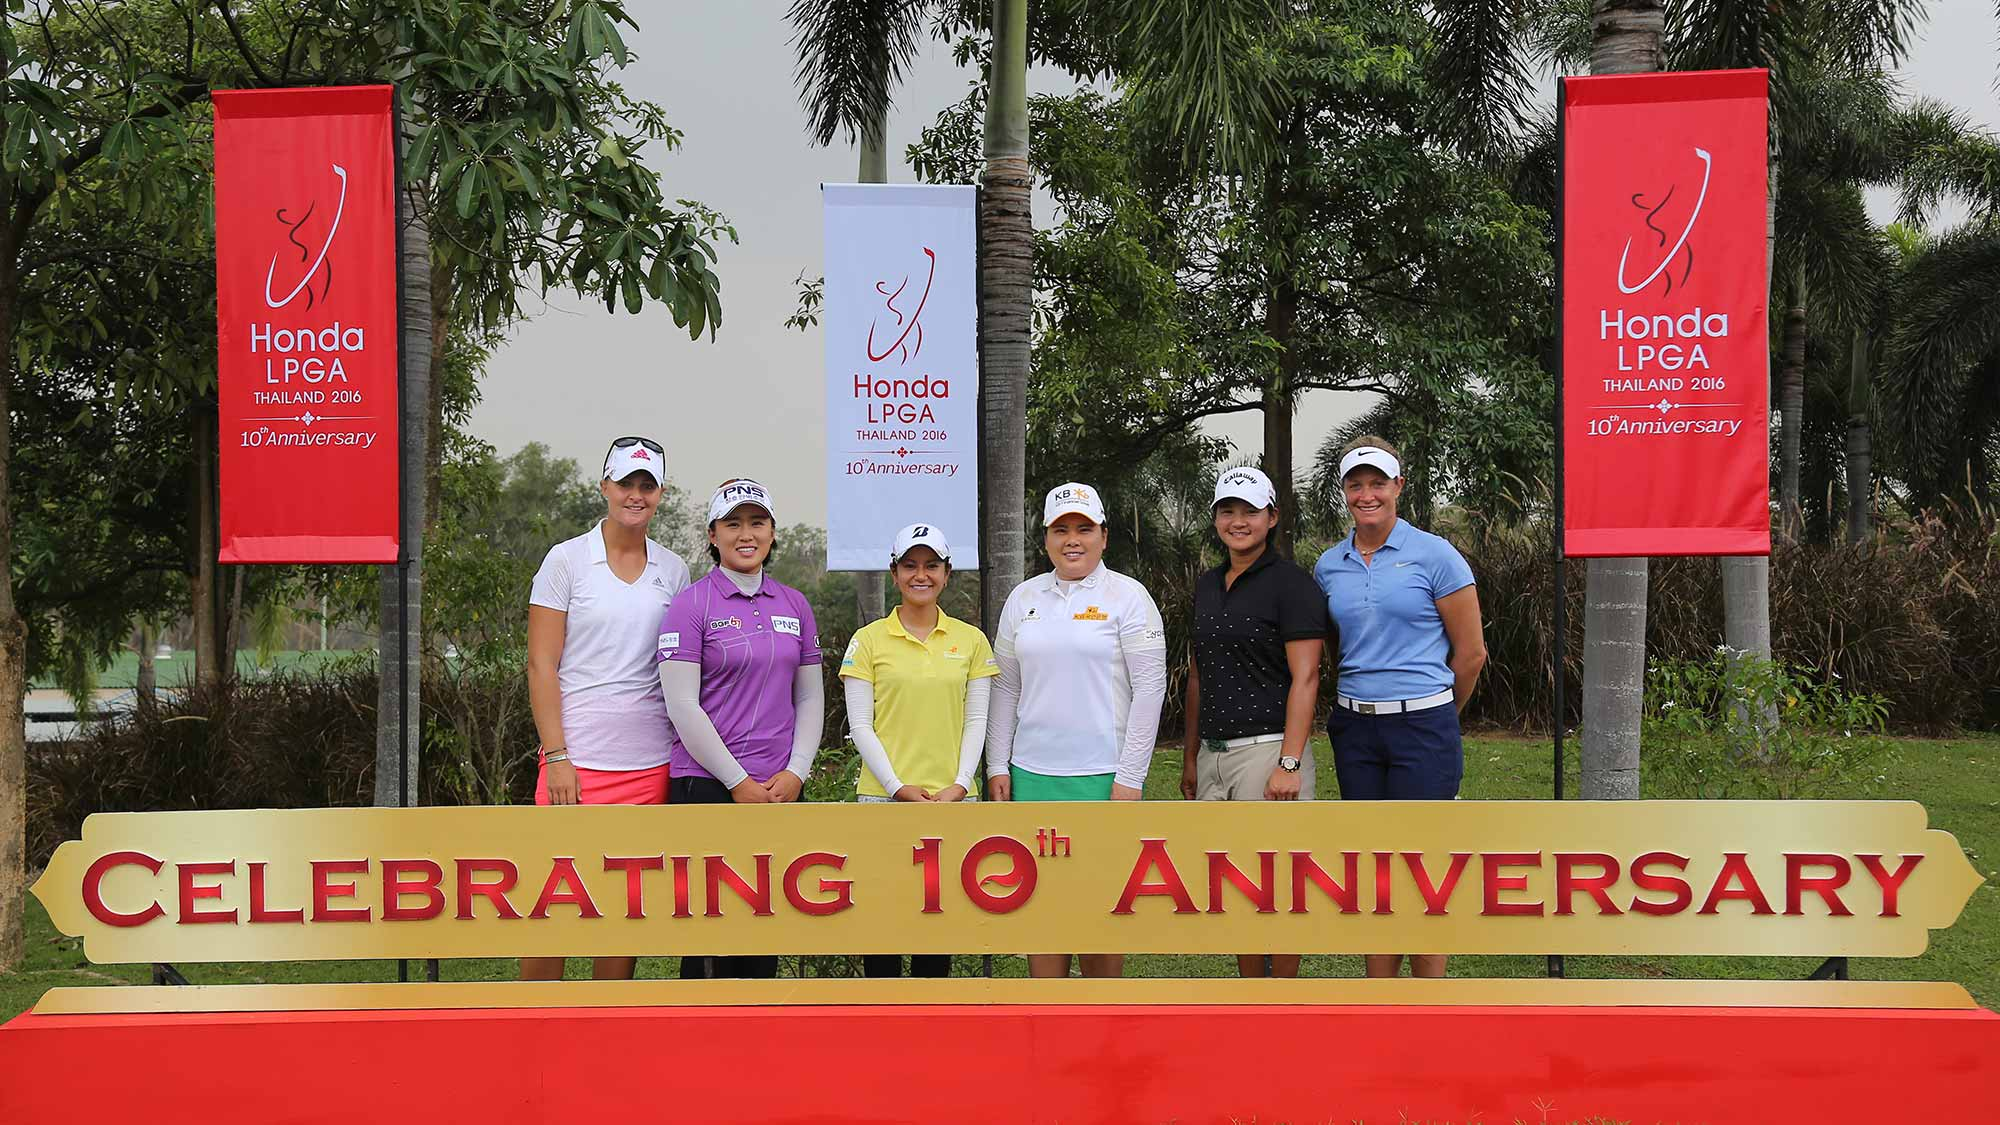 Players Celebrate the 10th Anniversary of the Honda LPGA Thailand